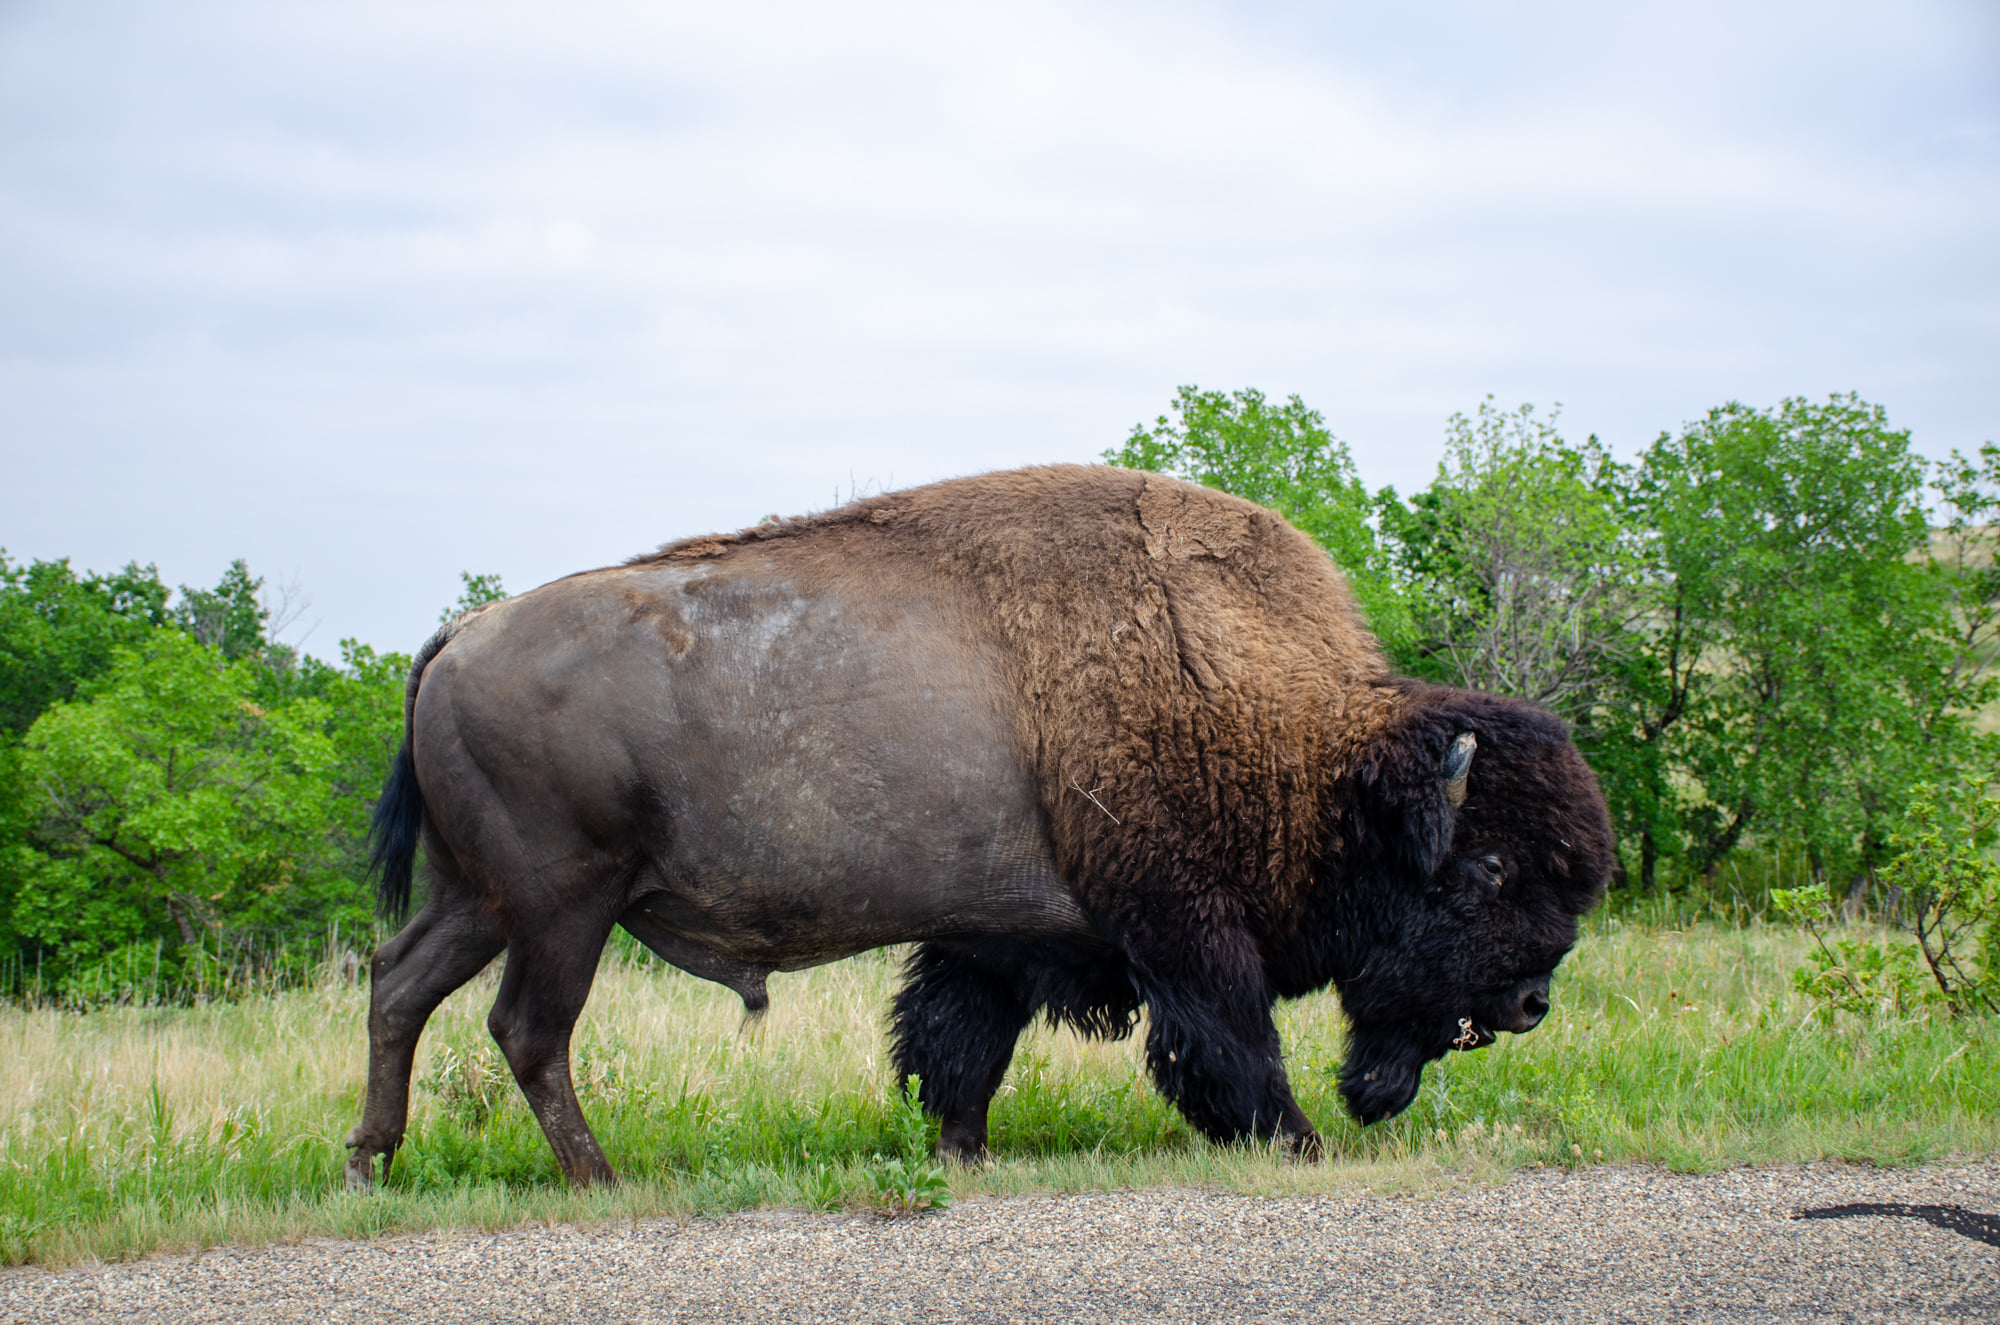 A bull bison is shown